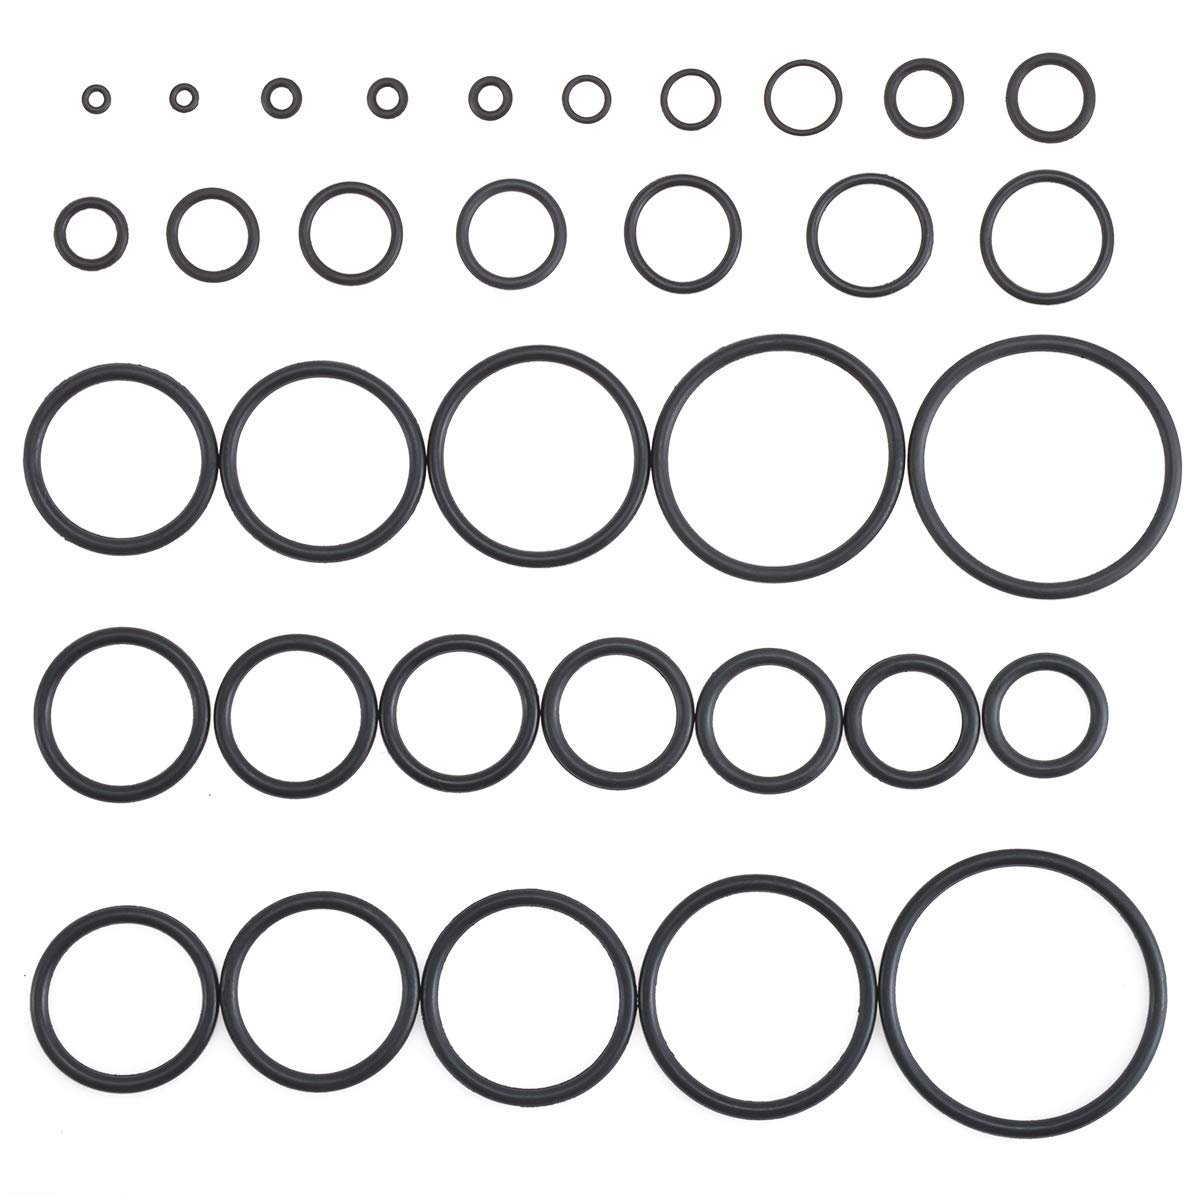 32 Sizes 3-50mm Diameter KATUR Universal O-Ring Assortment Automotive 419Pcs Metric Set General Repair Black Rubber O-Rings for Plumbing